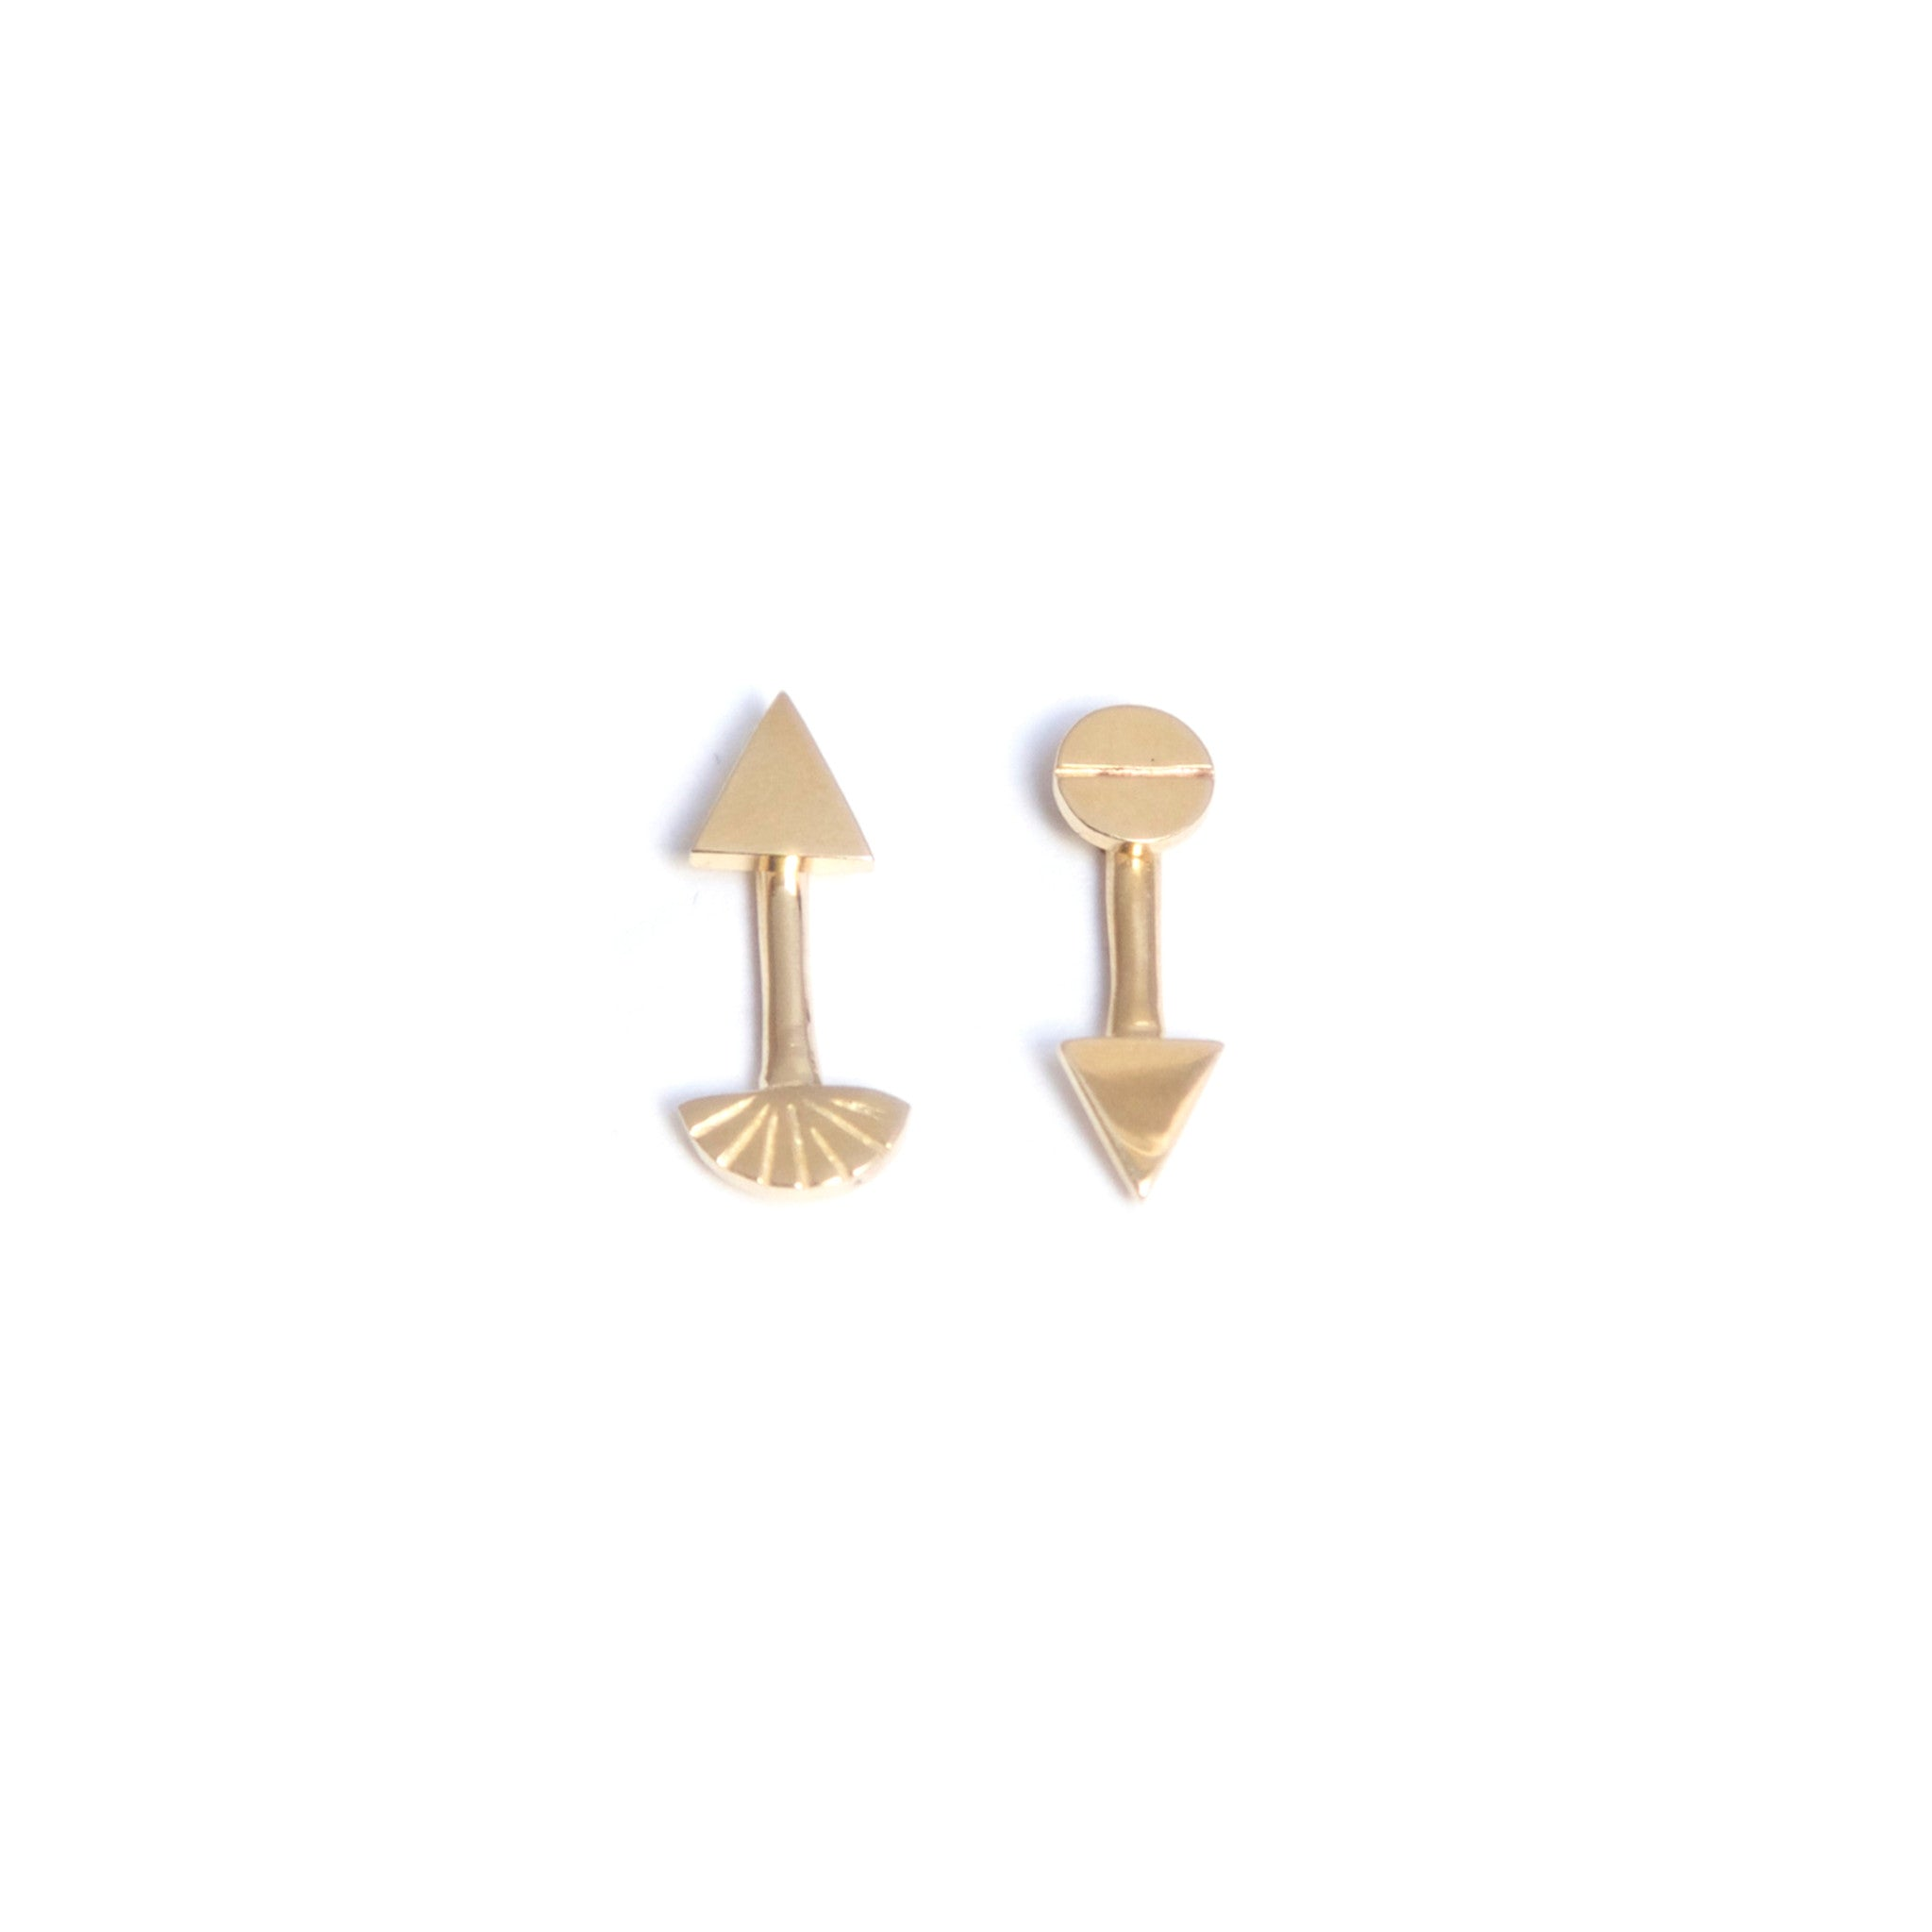 shop your shopping url gold earrings earn getimage online disney shld s way